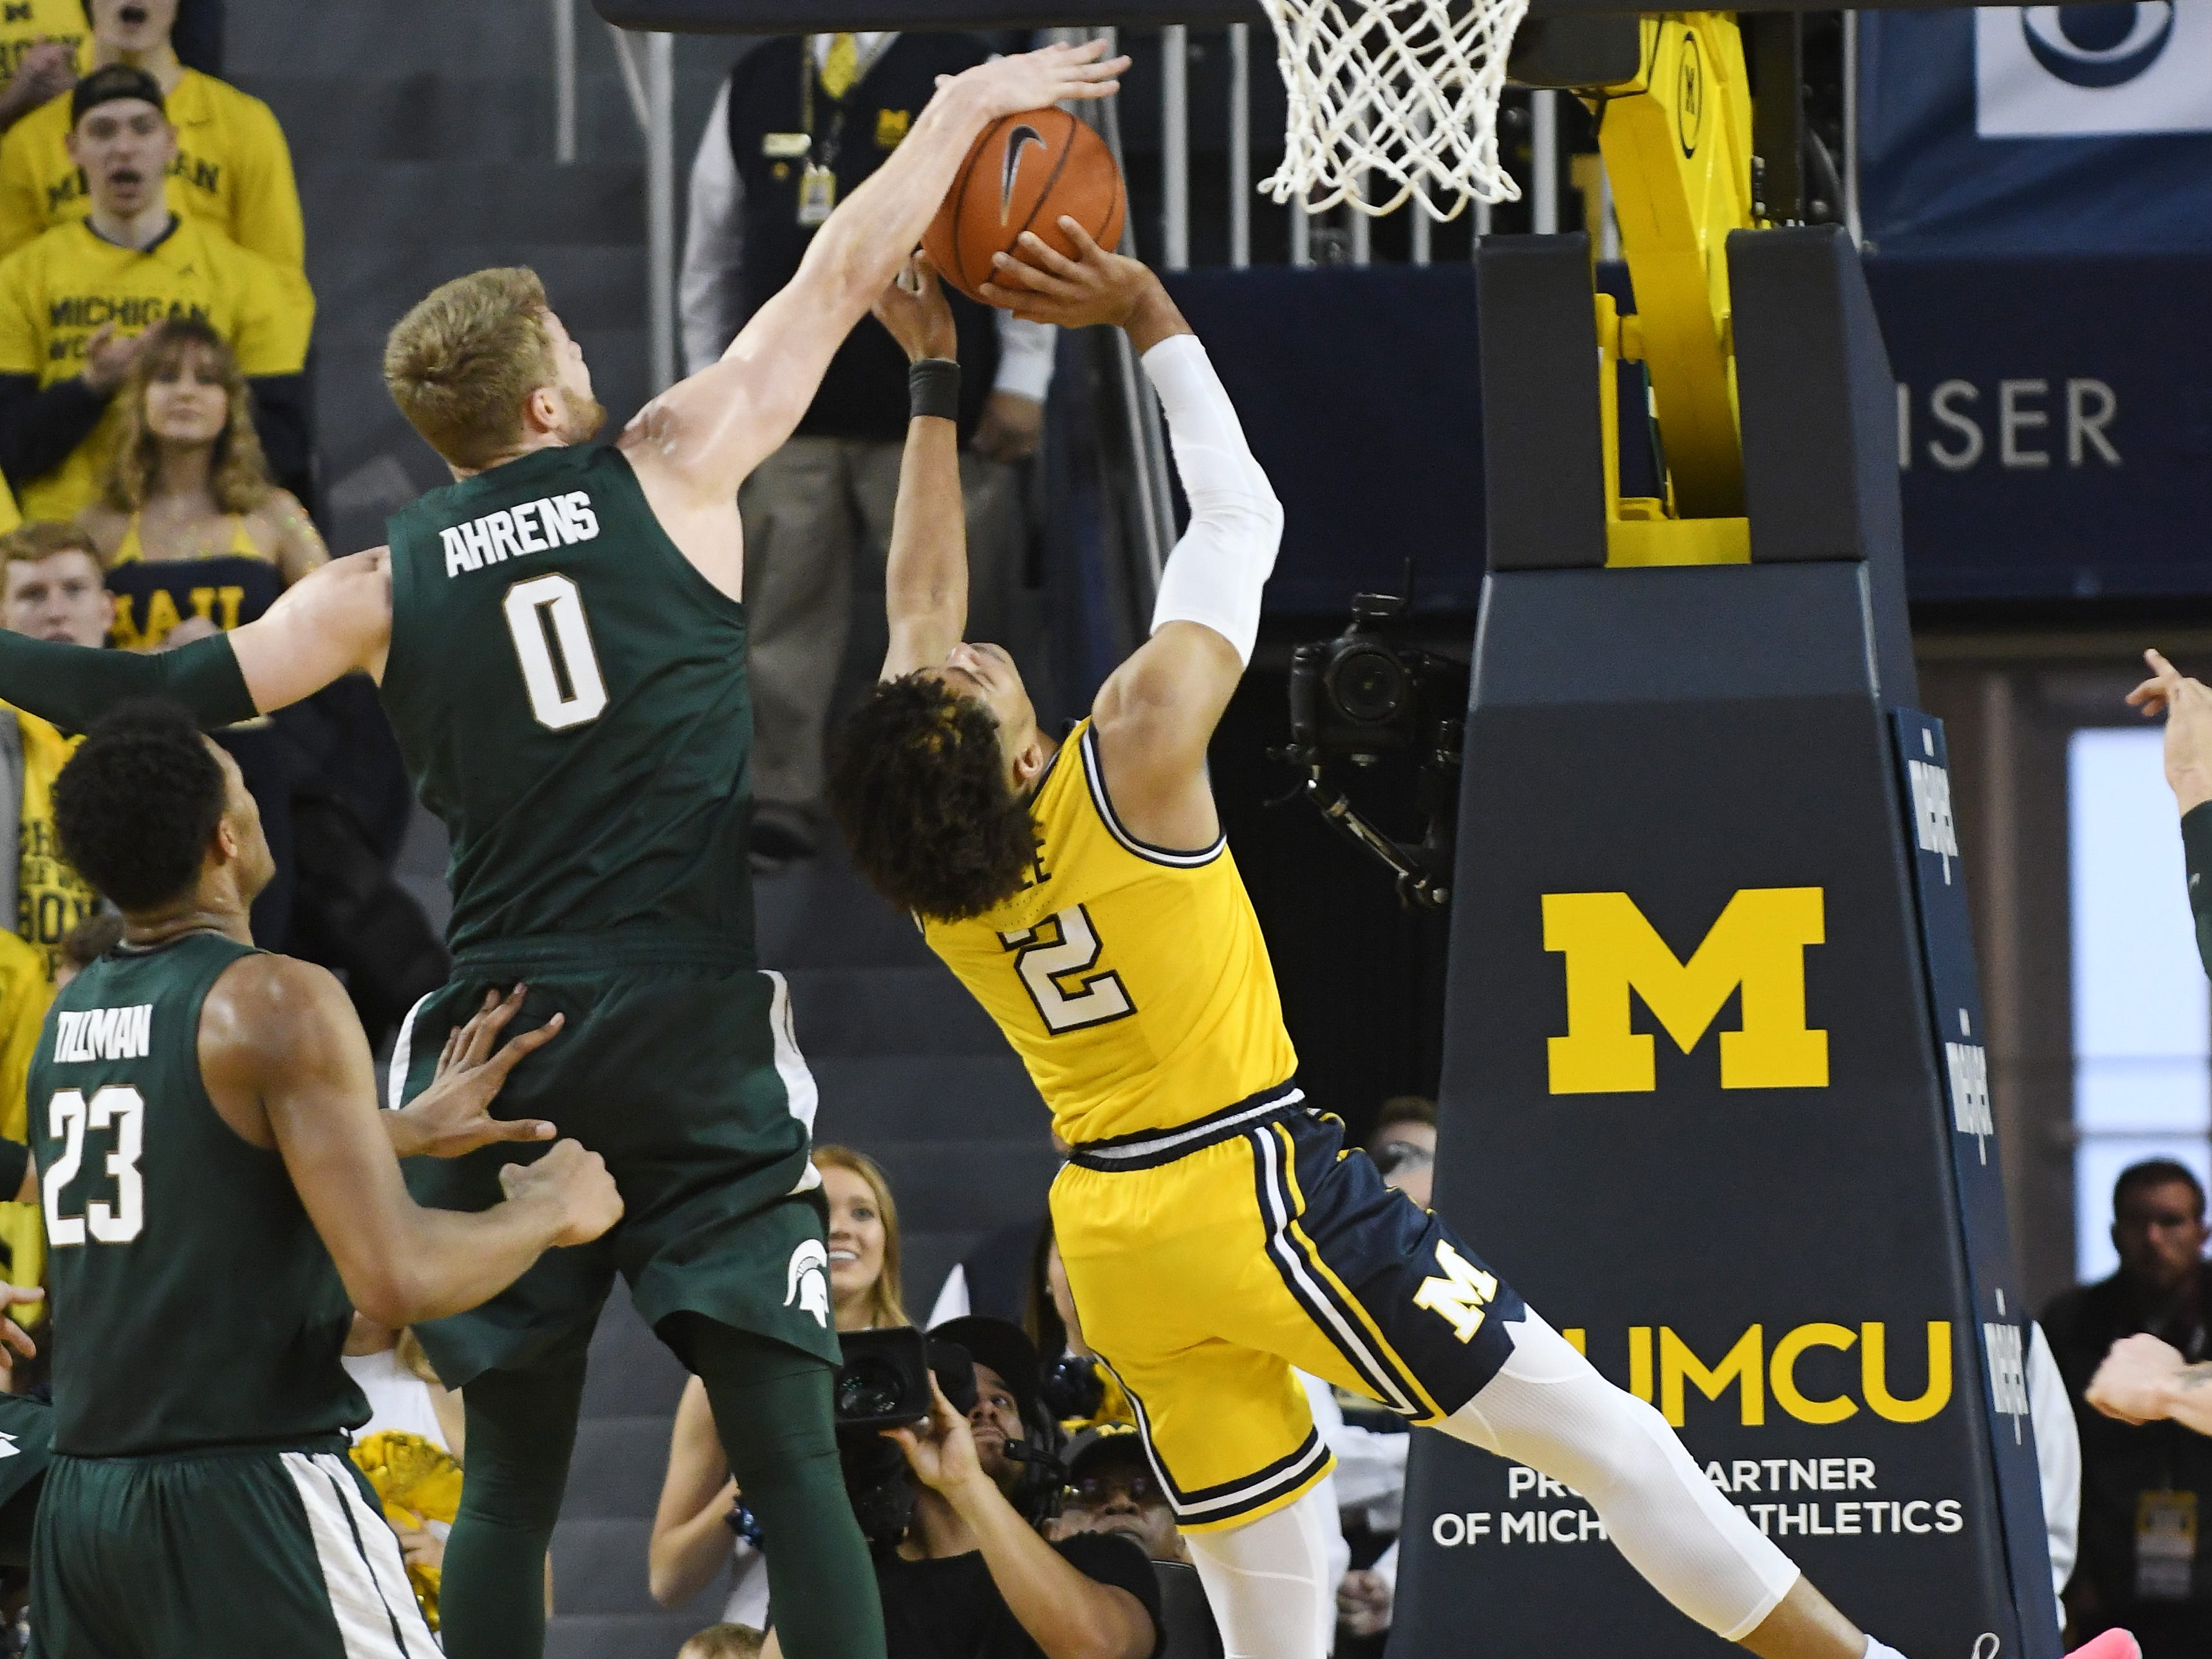 Michigan State's Kyle Ahrens blocks a shot by Michigan's Jordan Poole in the first half.